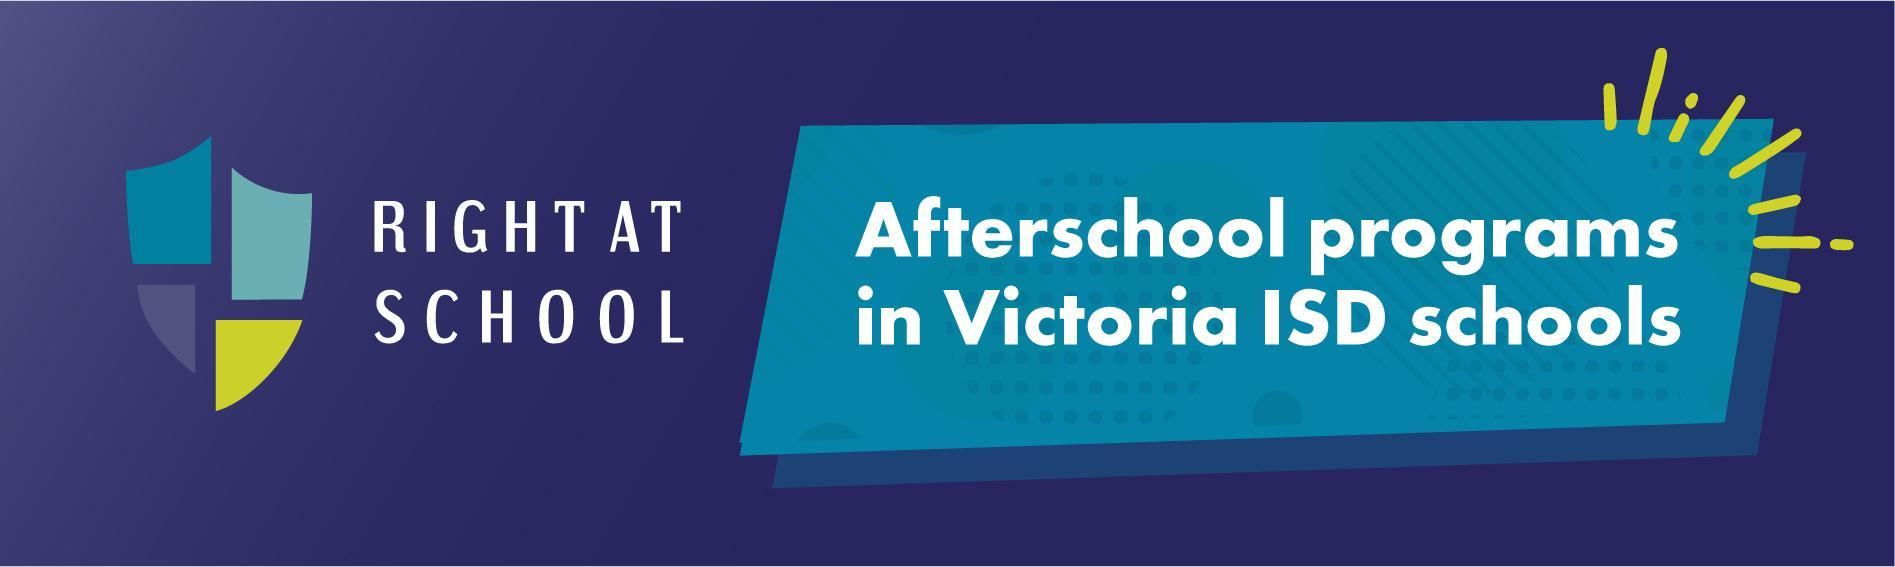 Right at School afterschool programs in Victoria ISD